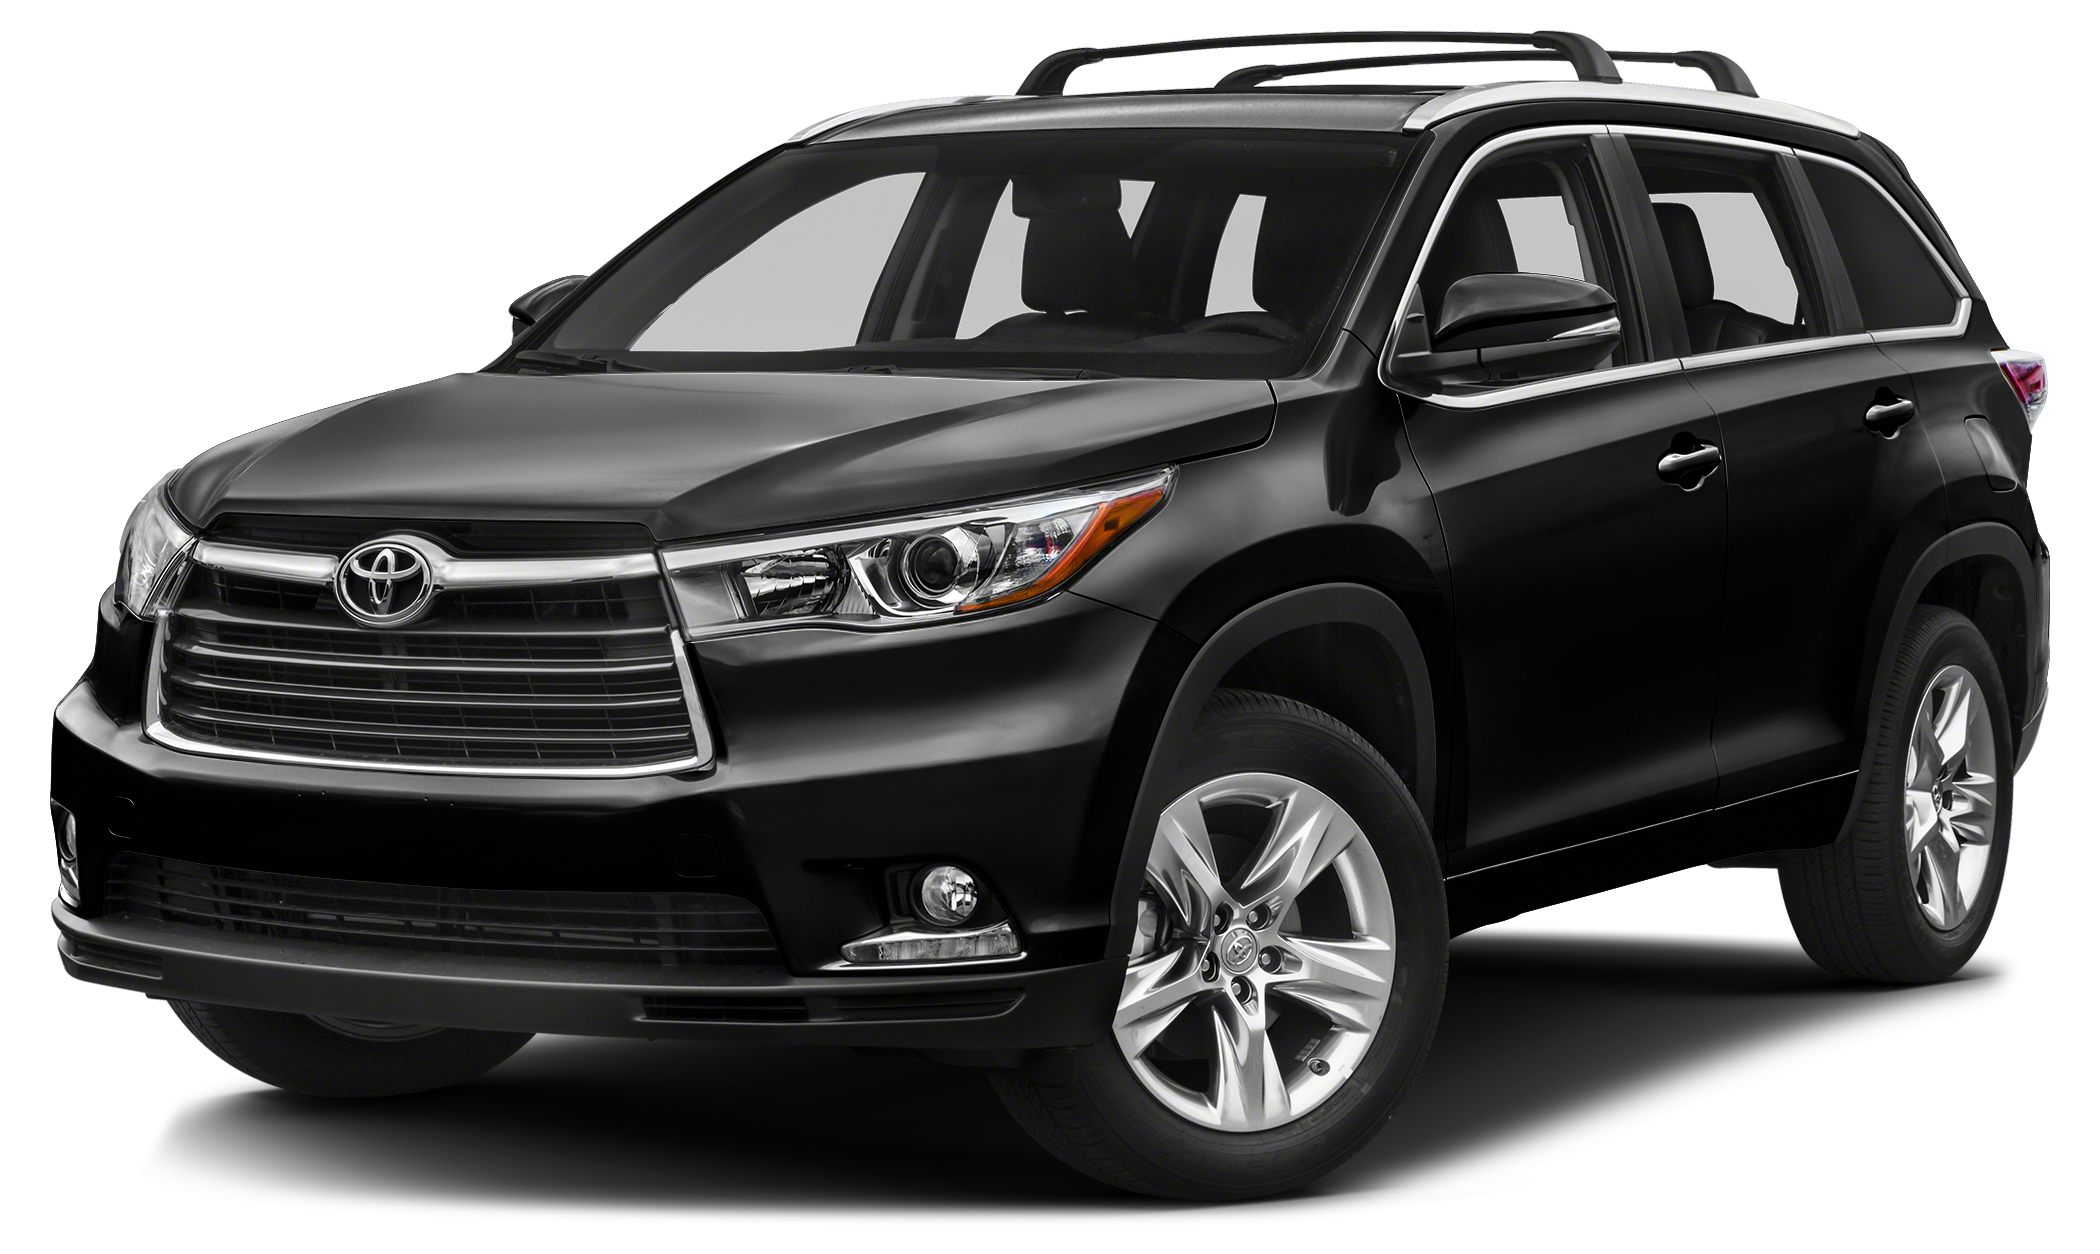 2015 Toyota Highlander XLE CARFAX 1-Owner ONLY 35059 Miles EPA 24 MPG Hwy18 MPG City XLE trim